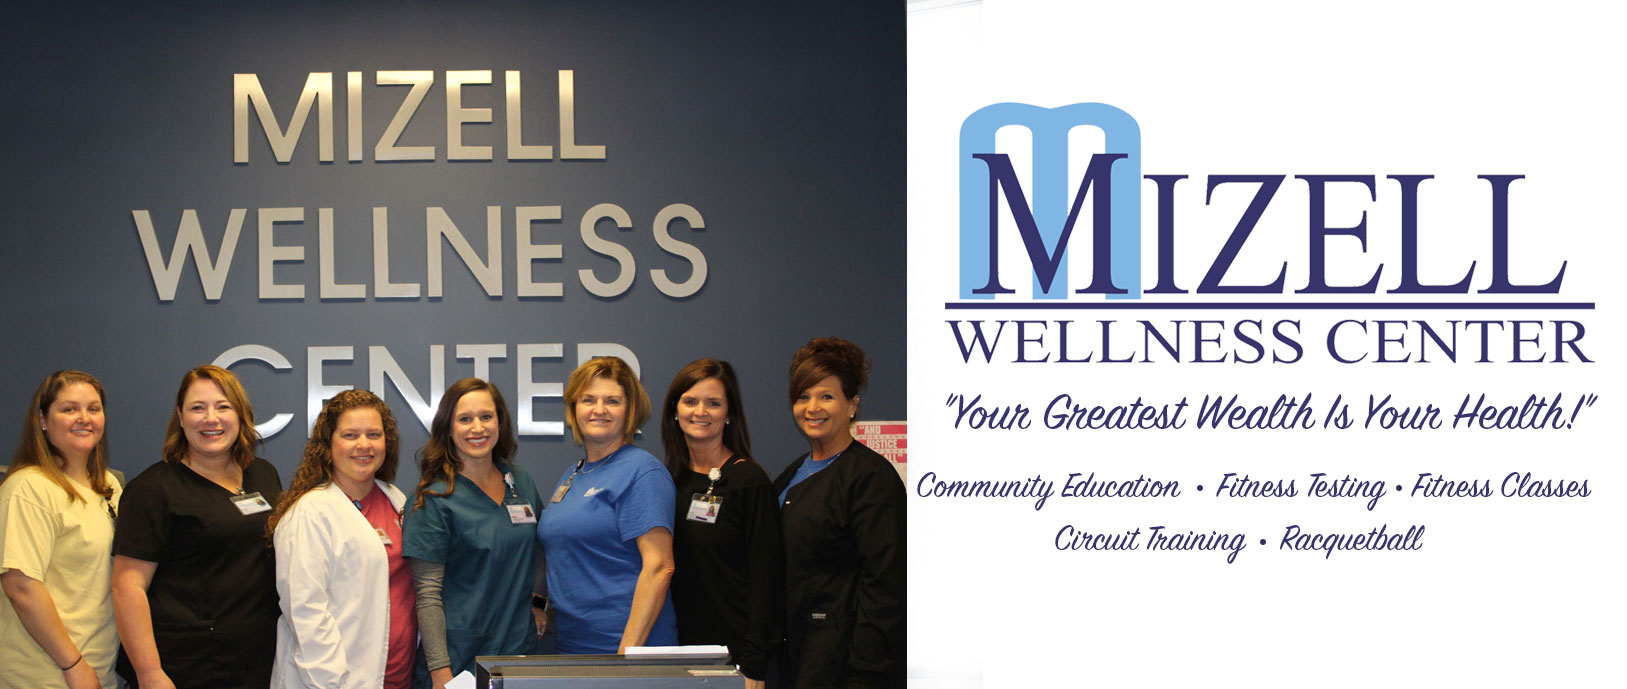 A group of smiling women in srubs. Mizell Wellness Center, your greatest wealth is your health. Community education, fitness testing, fitness classes, circuit training and racquetball